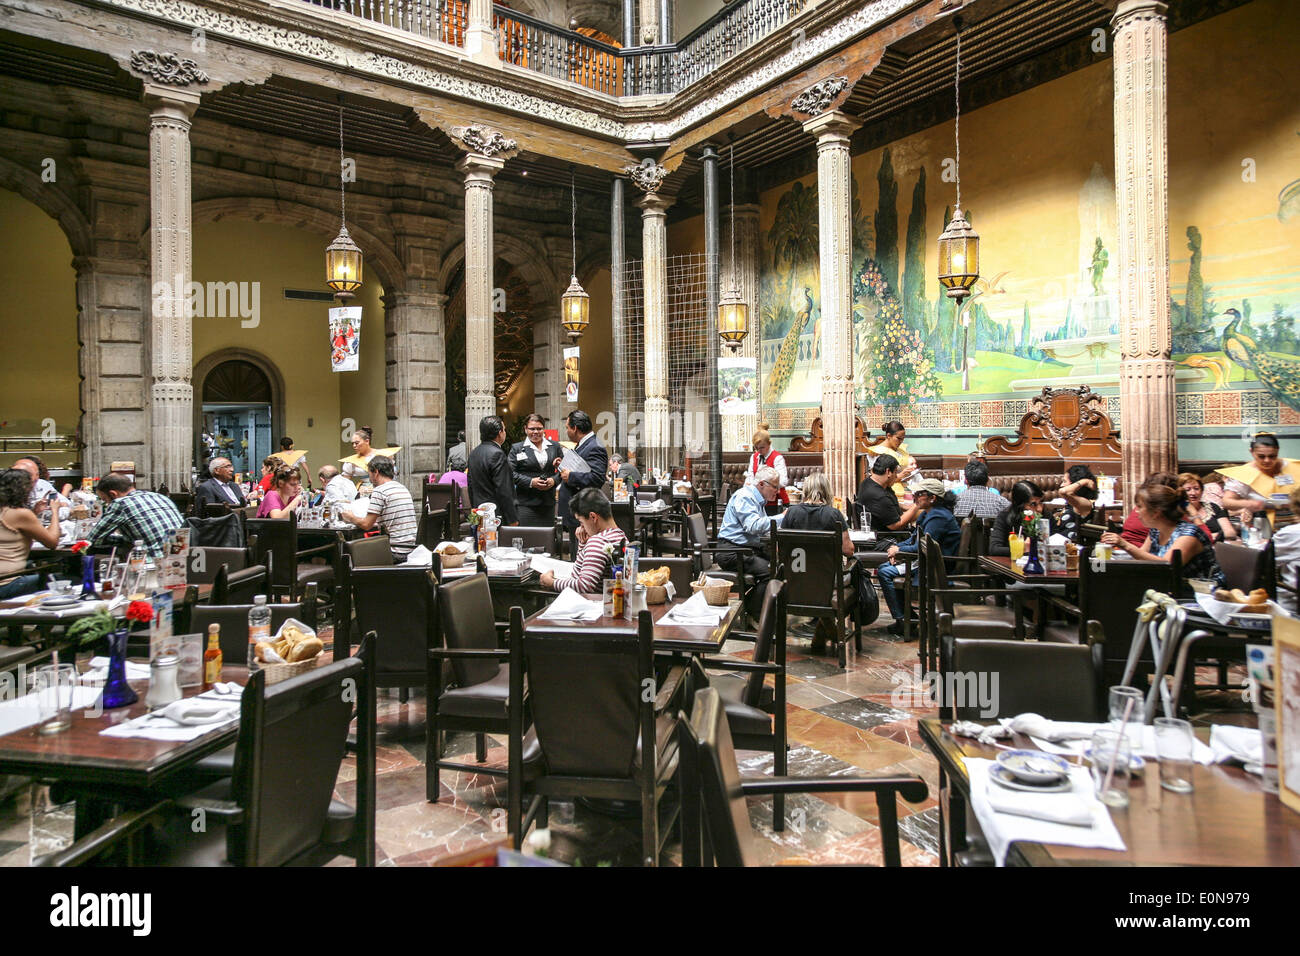 diners of all ages enjoy a wonderful dining ambiance in soaring central court of Sanborns House of Tiles restaurant Mexico City - Stock Image